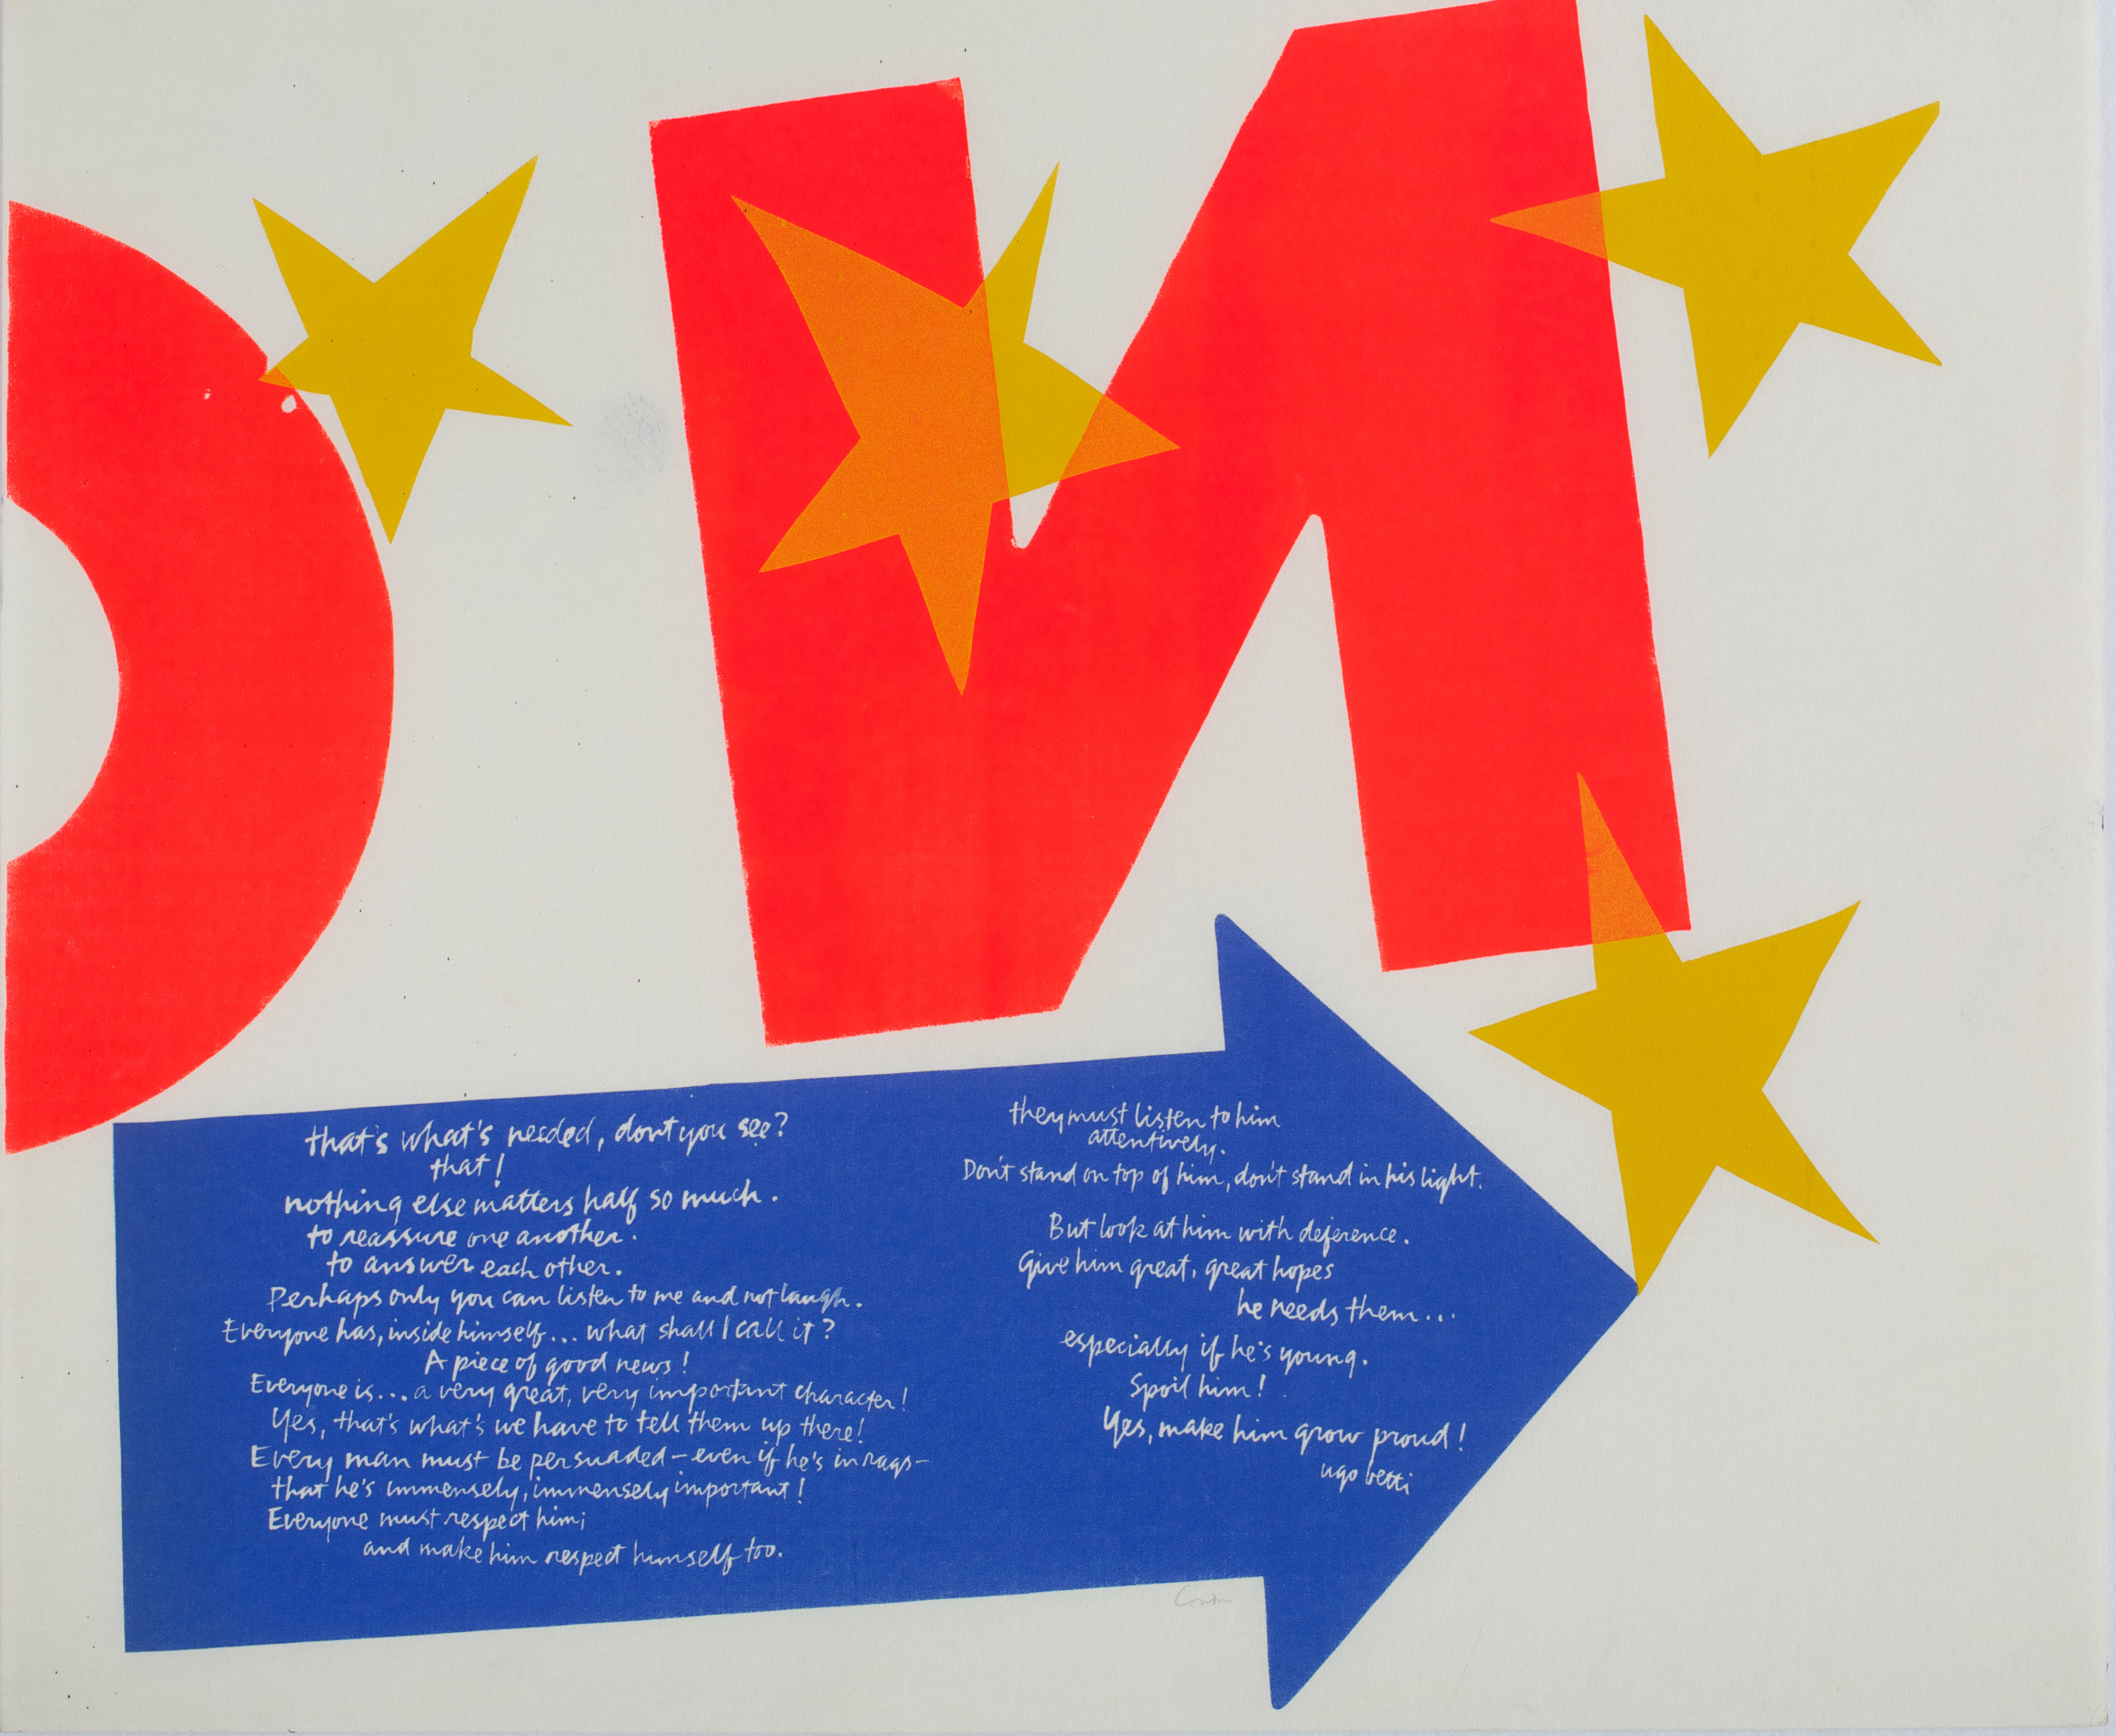 Corita Kent, <i> Stars</i>, 1967 Color silkscreen, 29 3/8 x 29 3/4 in. New Britain Museum of American Art, Gift of John Fitzgerald, 1968.01 © 2019 Estate of Corita Kent/ Immaculate Heart Community/ Licensed by Artists Rights Society (ARS), New York